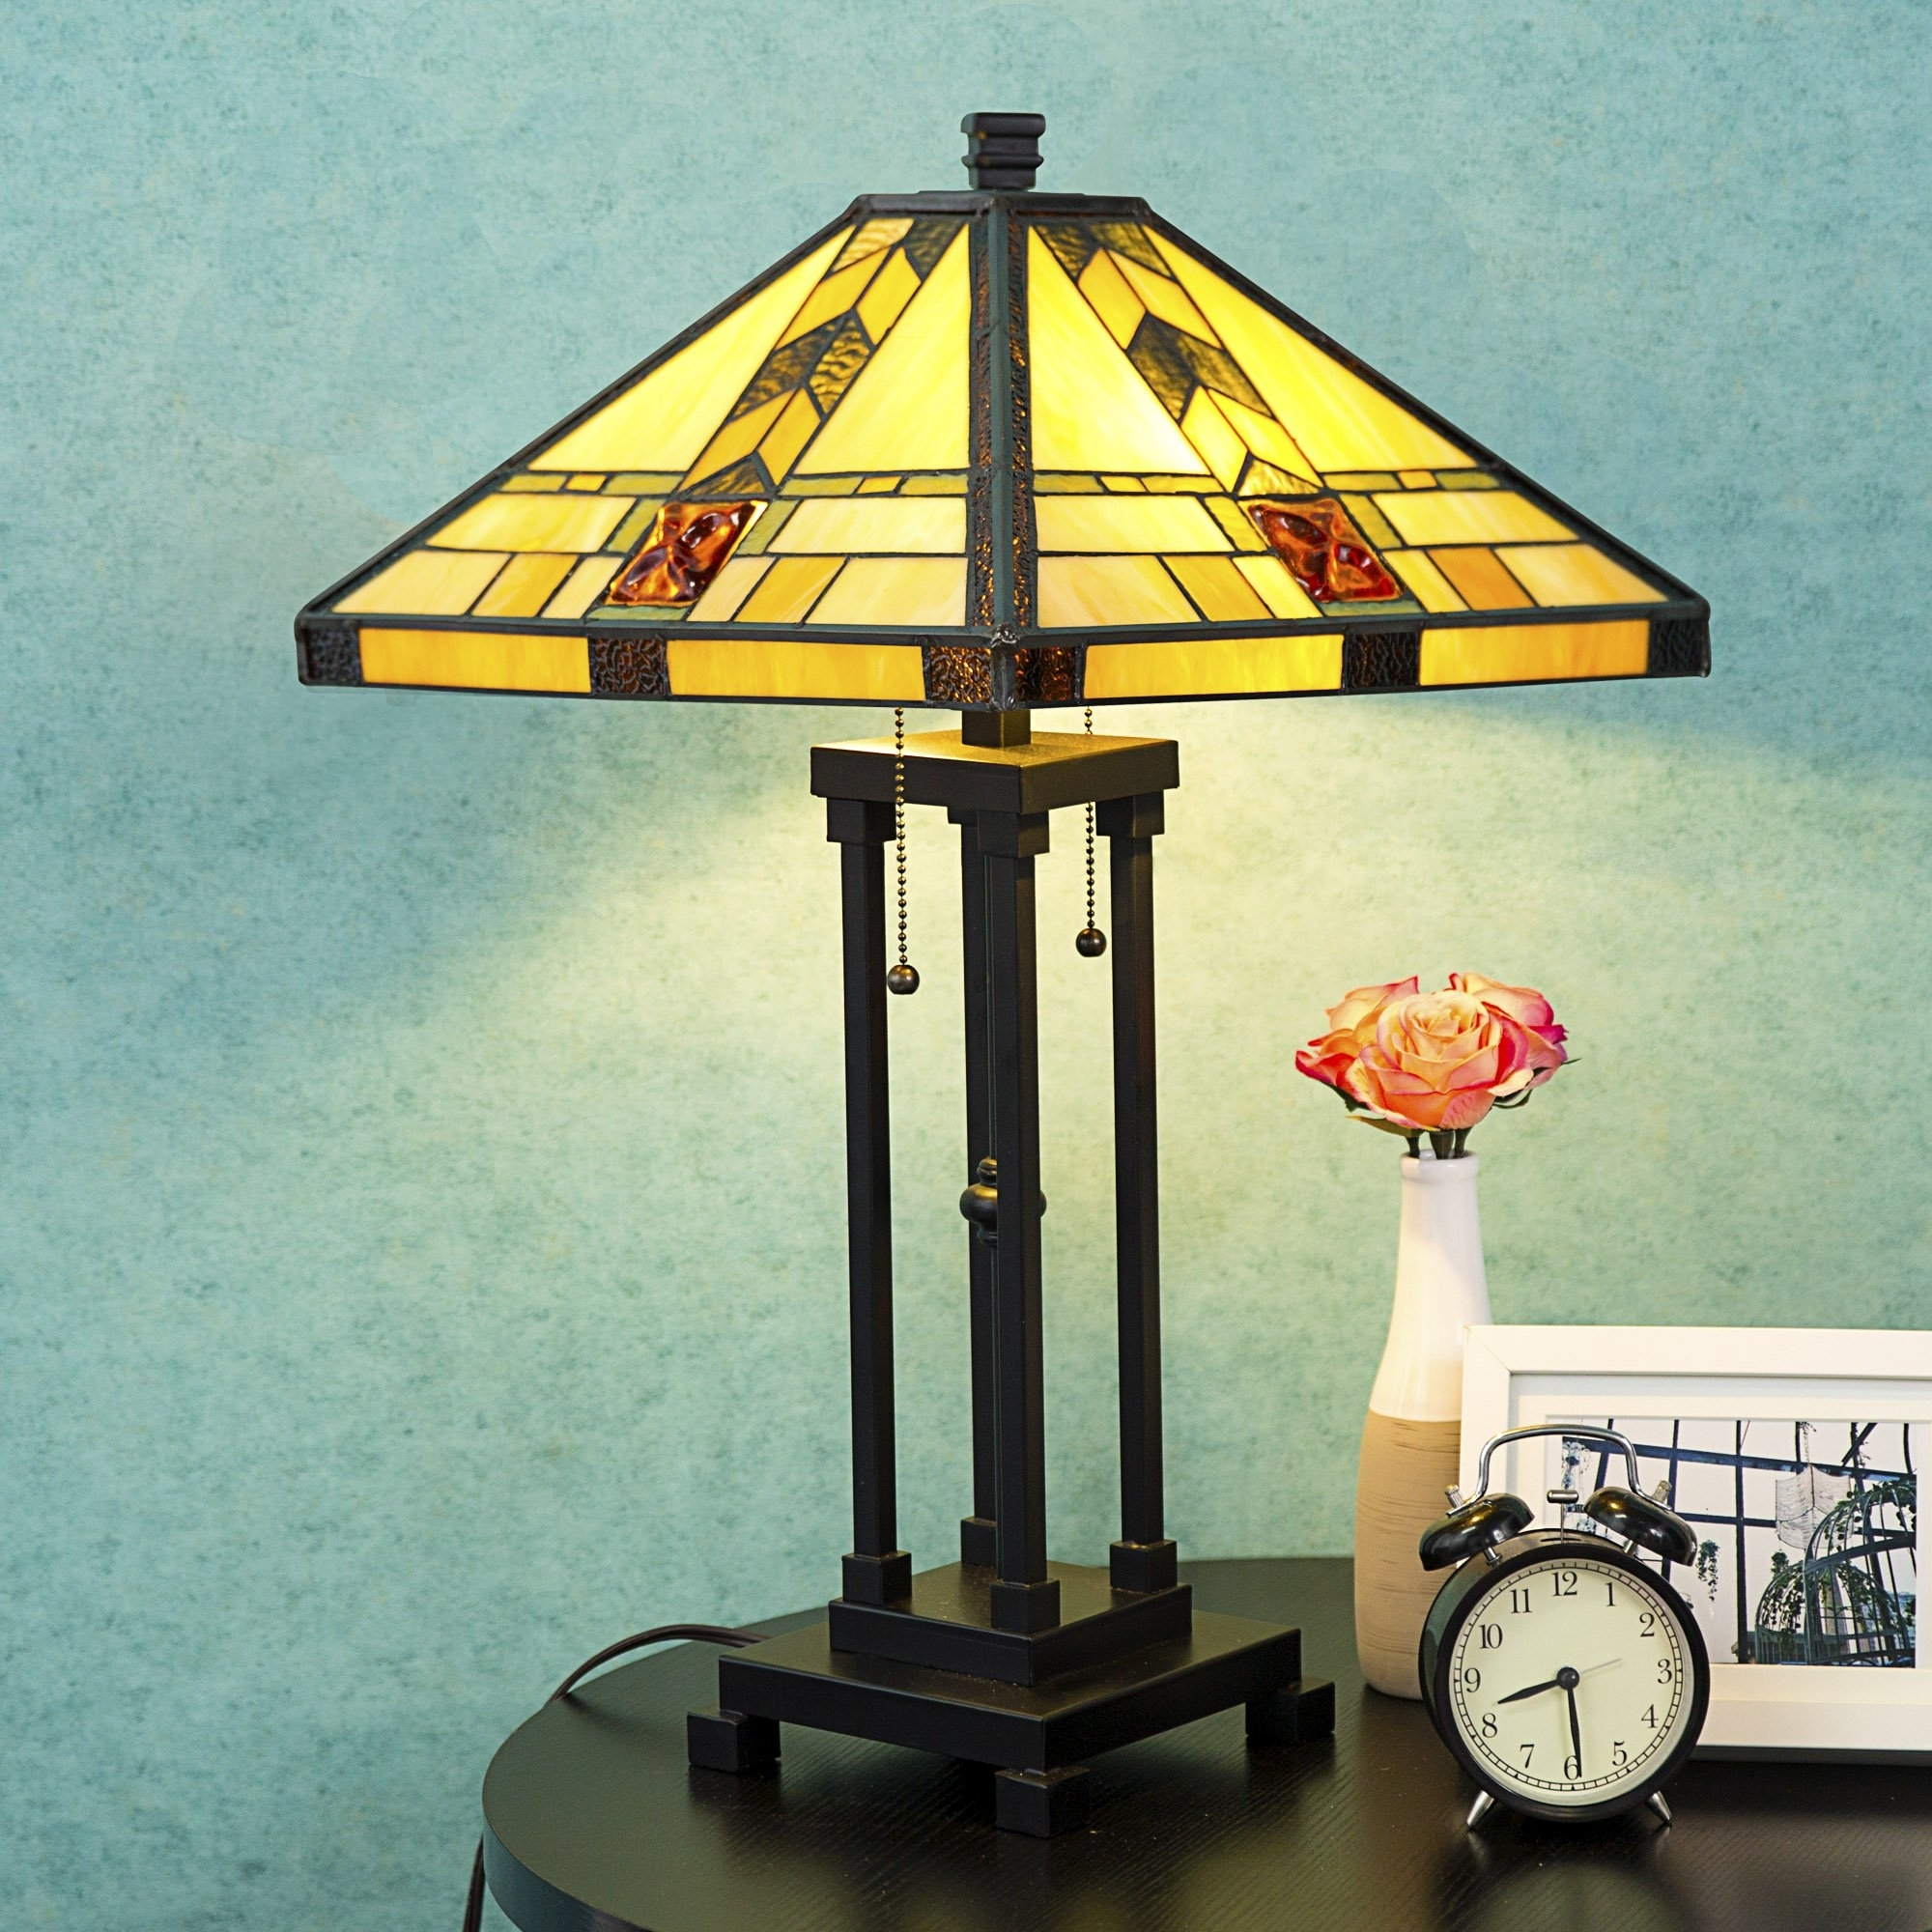 Tiffany Style Lamp Table Lamp Home Decor Lighting Mission Design Desk Lamp